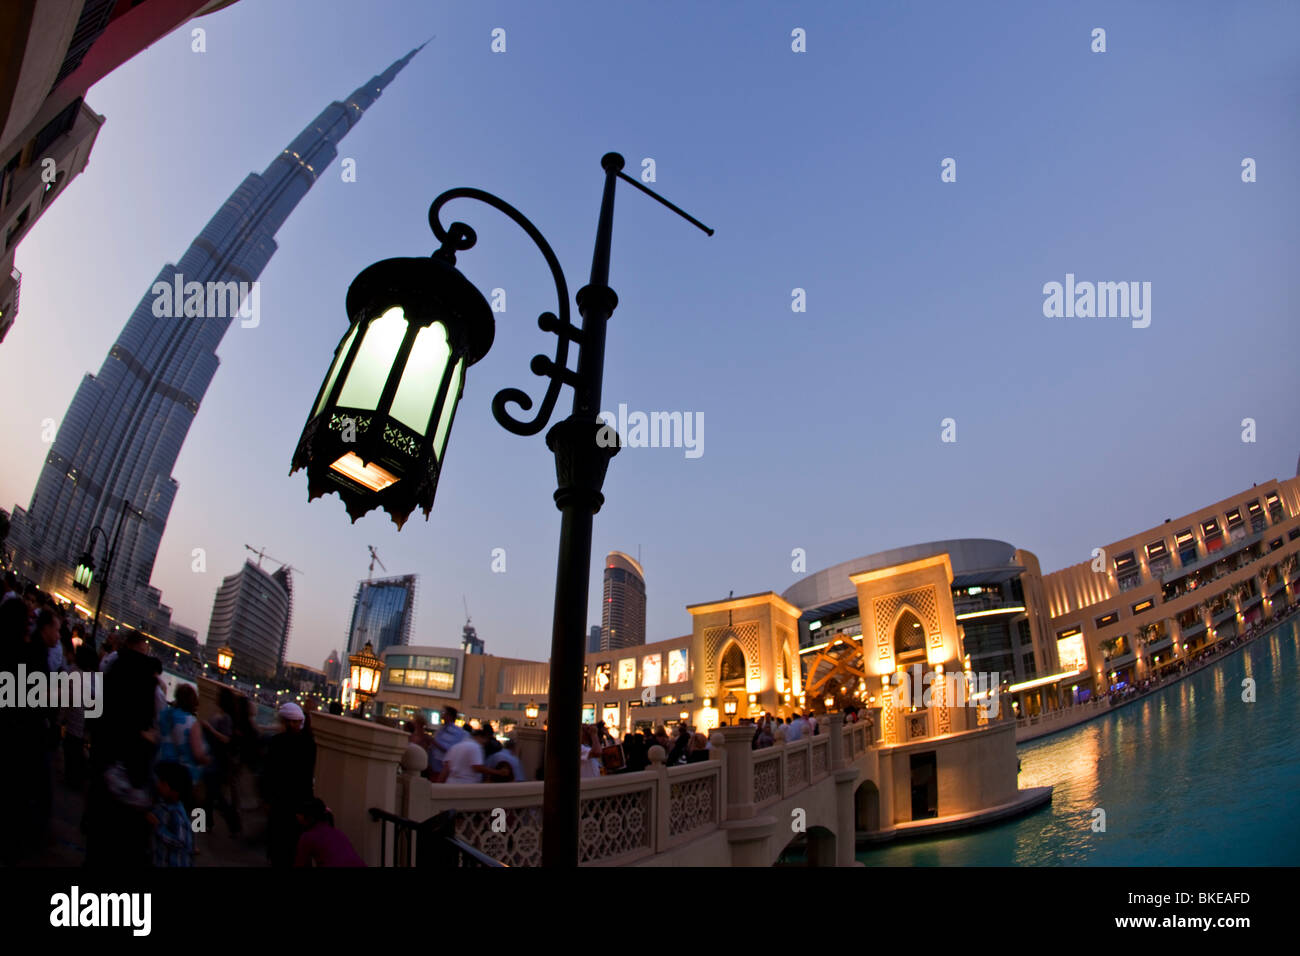 Burj Khalifa, highest Skycraper in the World, 828 meter, Burj Dubai, Dubai Mall, United Arab Emirates - Stock Image